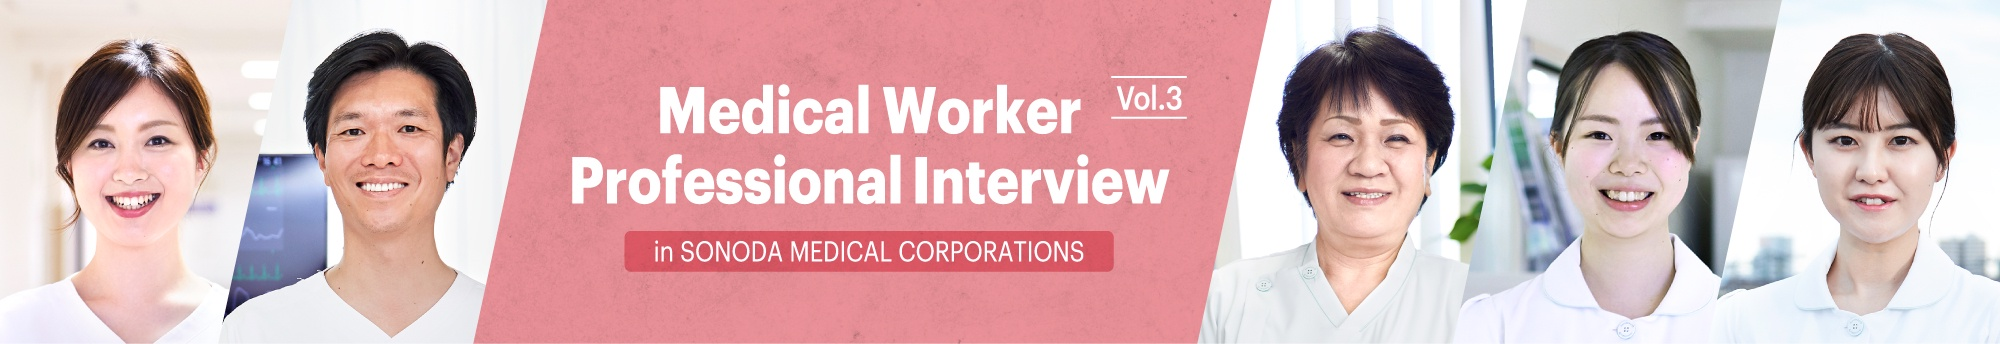 Medical Worker Professional Interview Vol.3